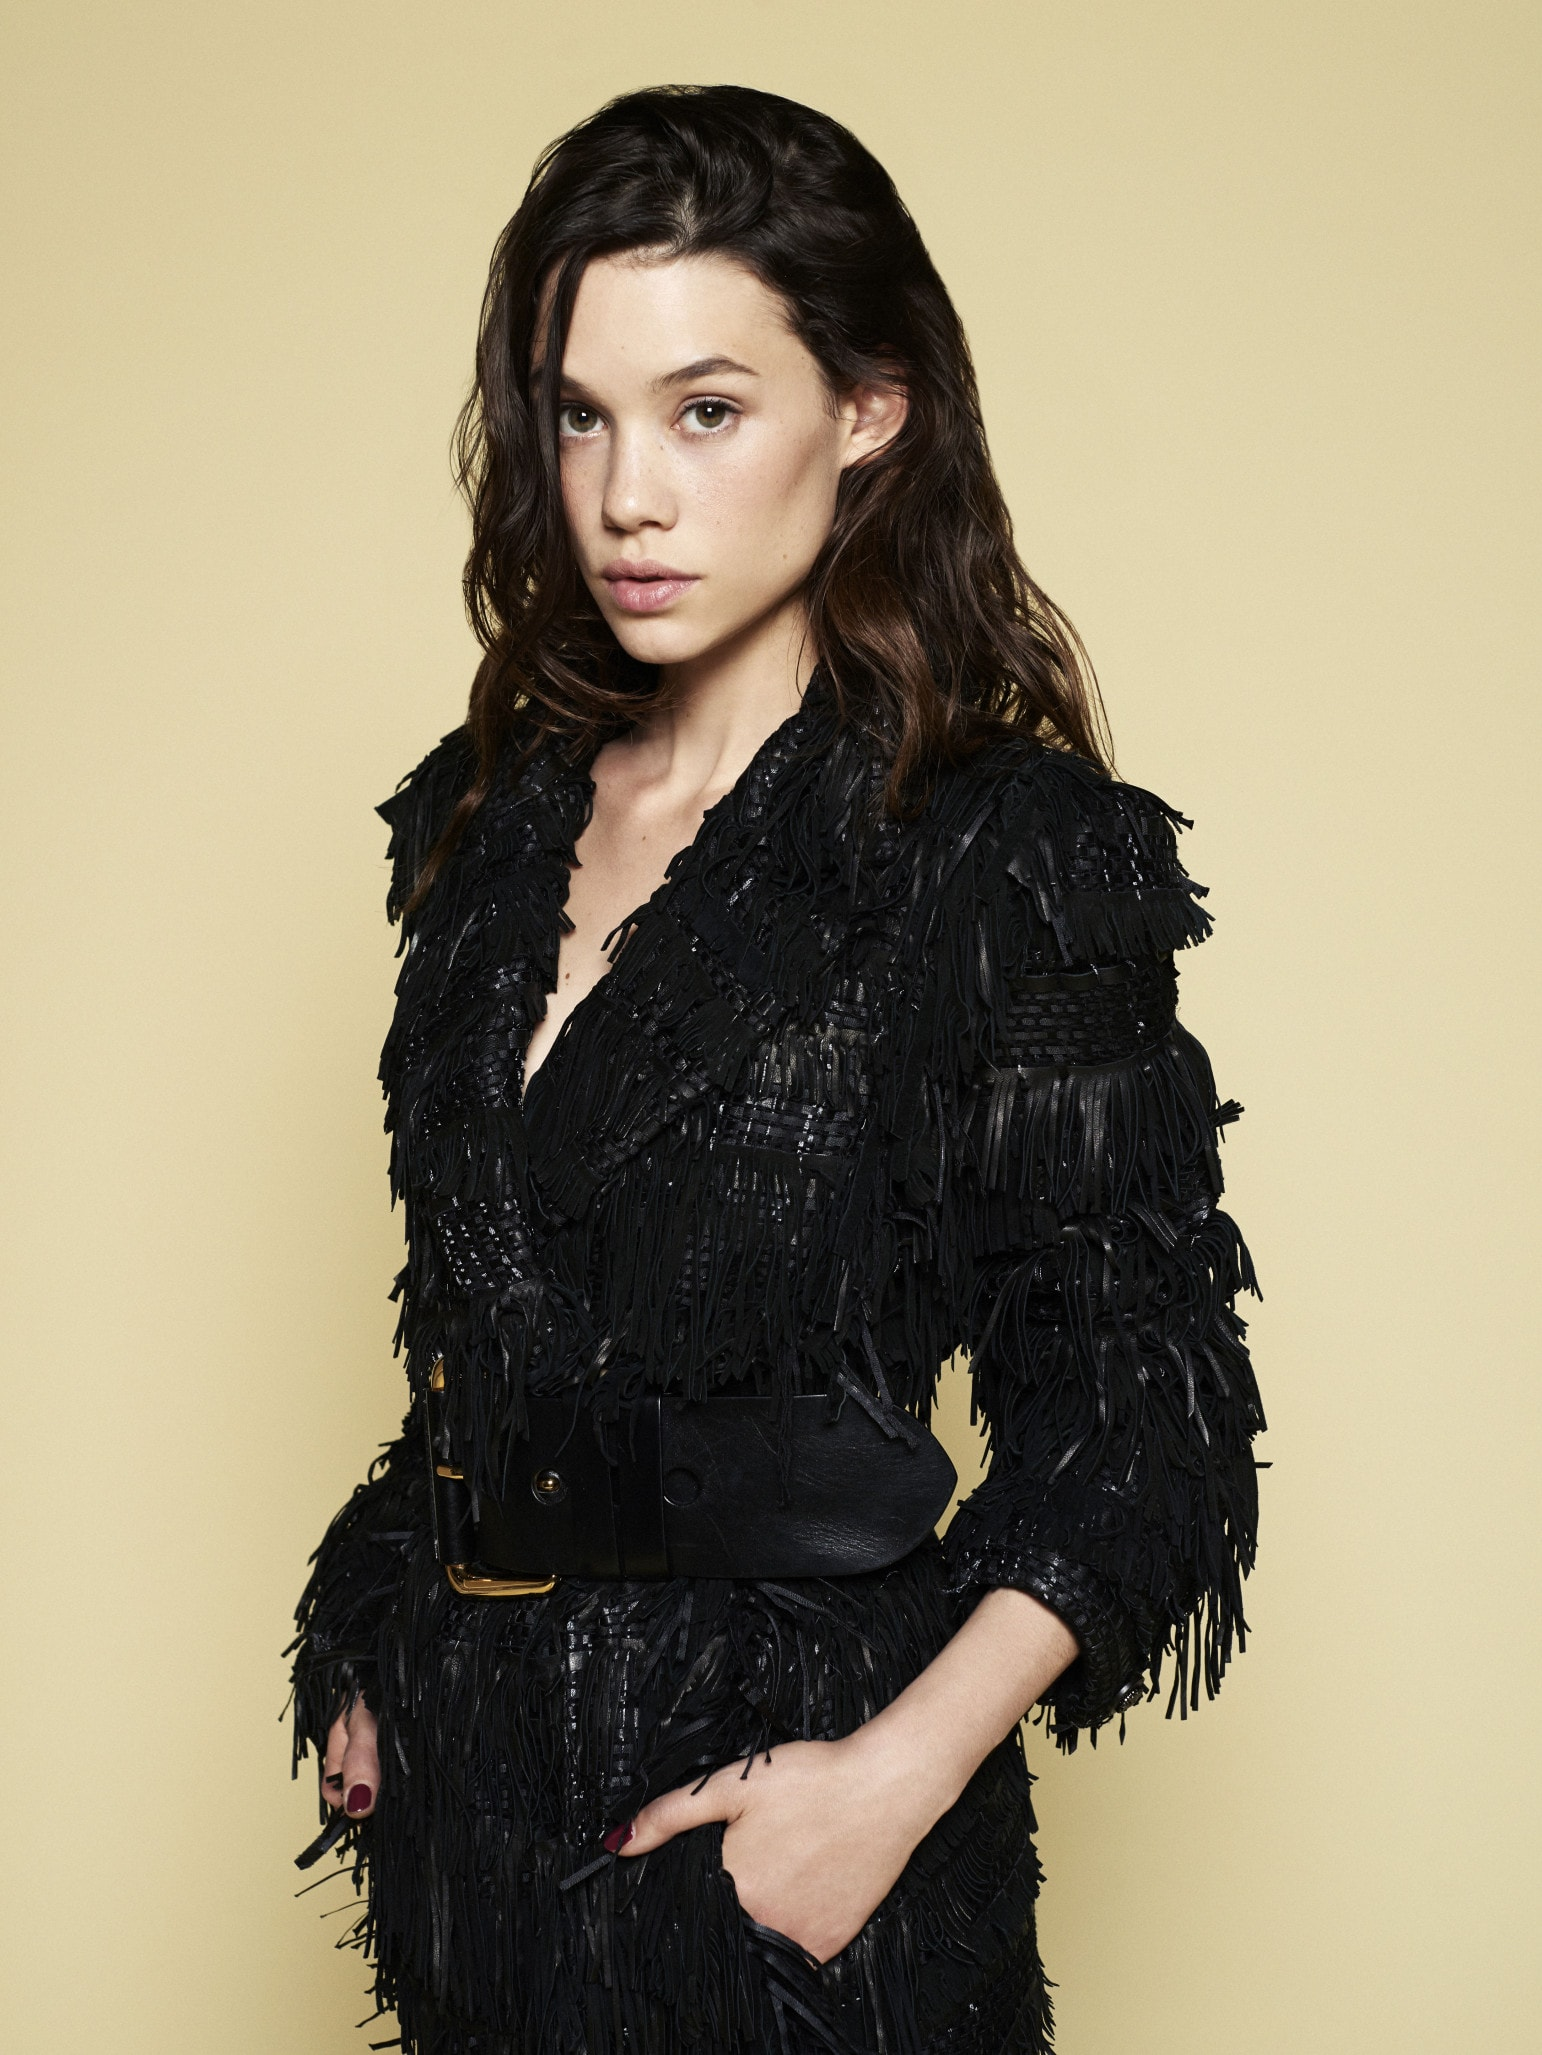 Astrid Berges-Frisbey HQ wallpapers